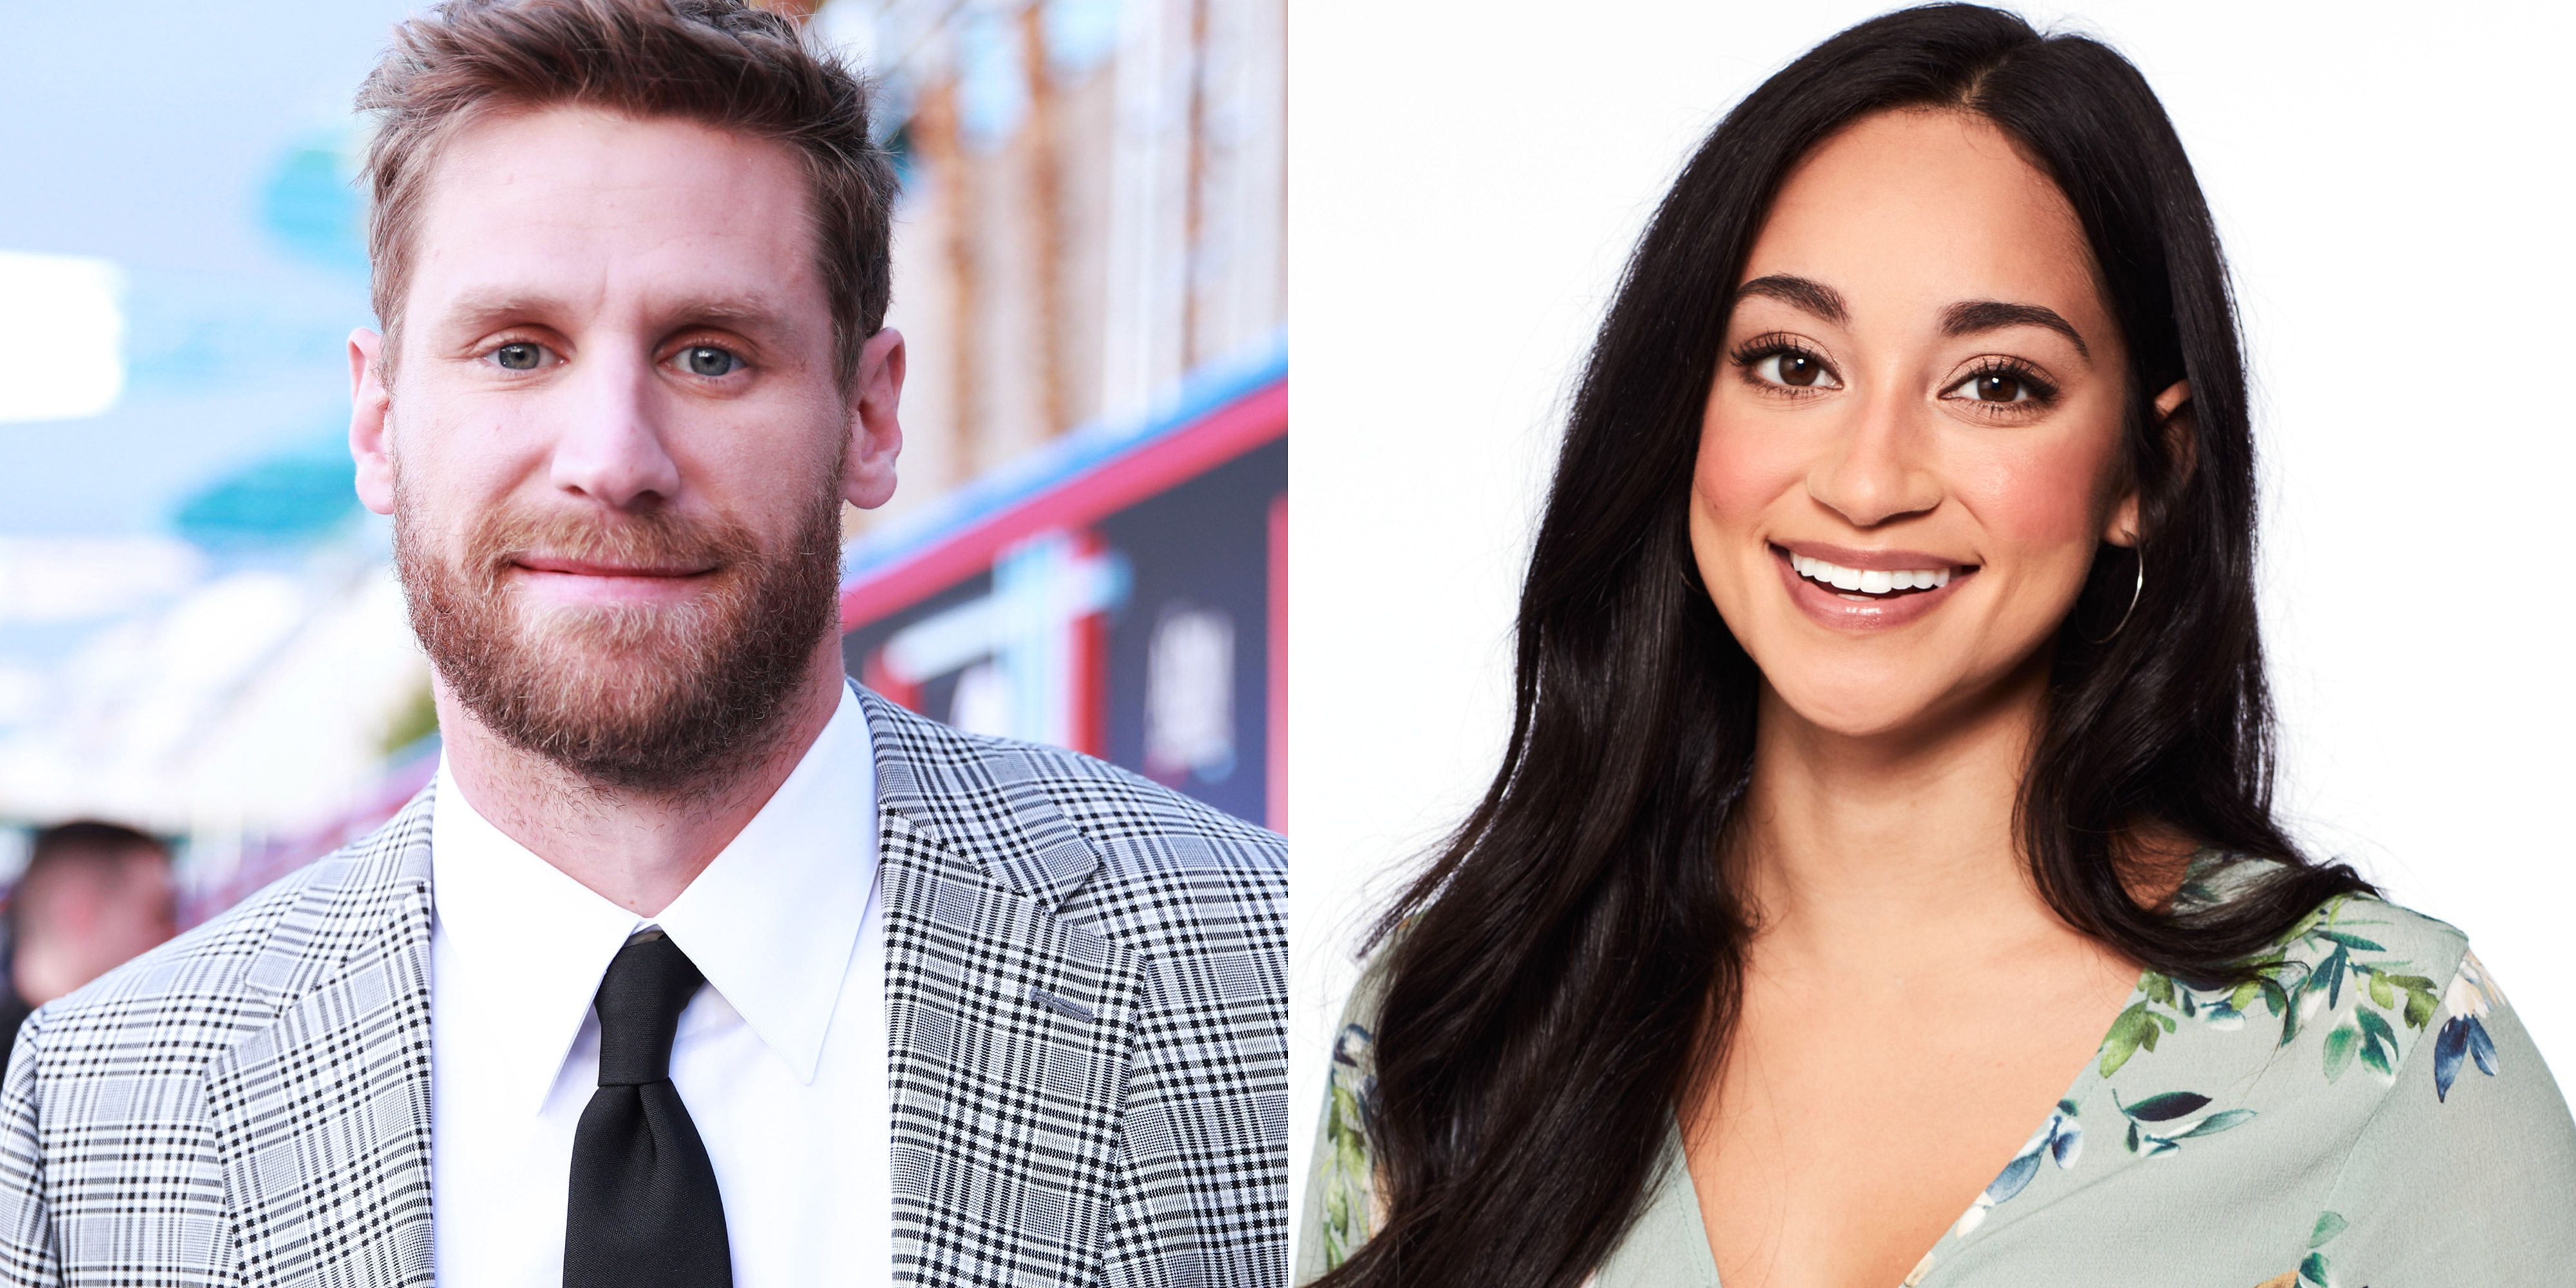 What Happened With Victoria Fuller and Chase Rice?